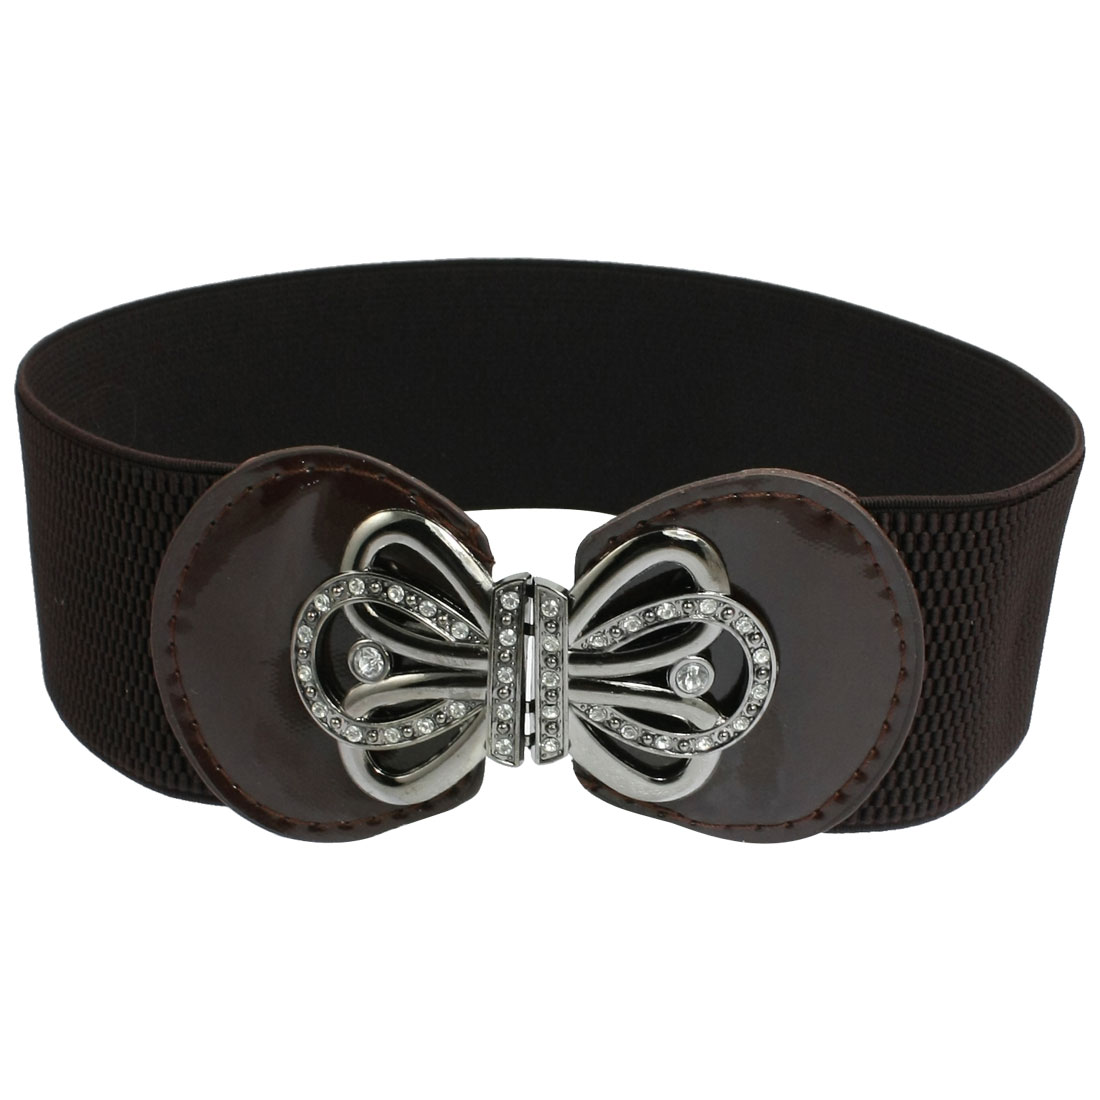 Lady Floral Buckle Faux Leather Elastic Cinch Band Waist Belt Coffee Color